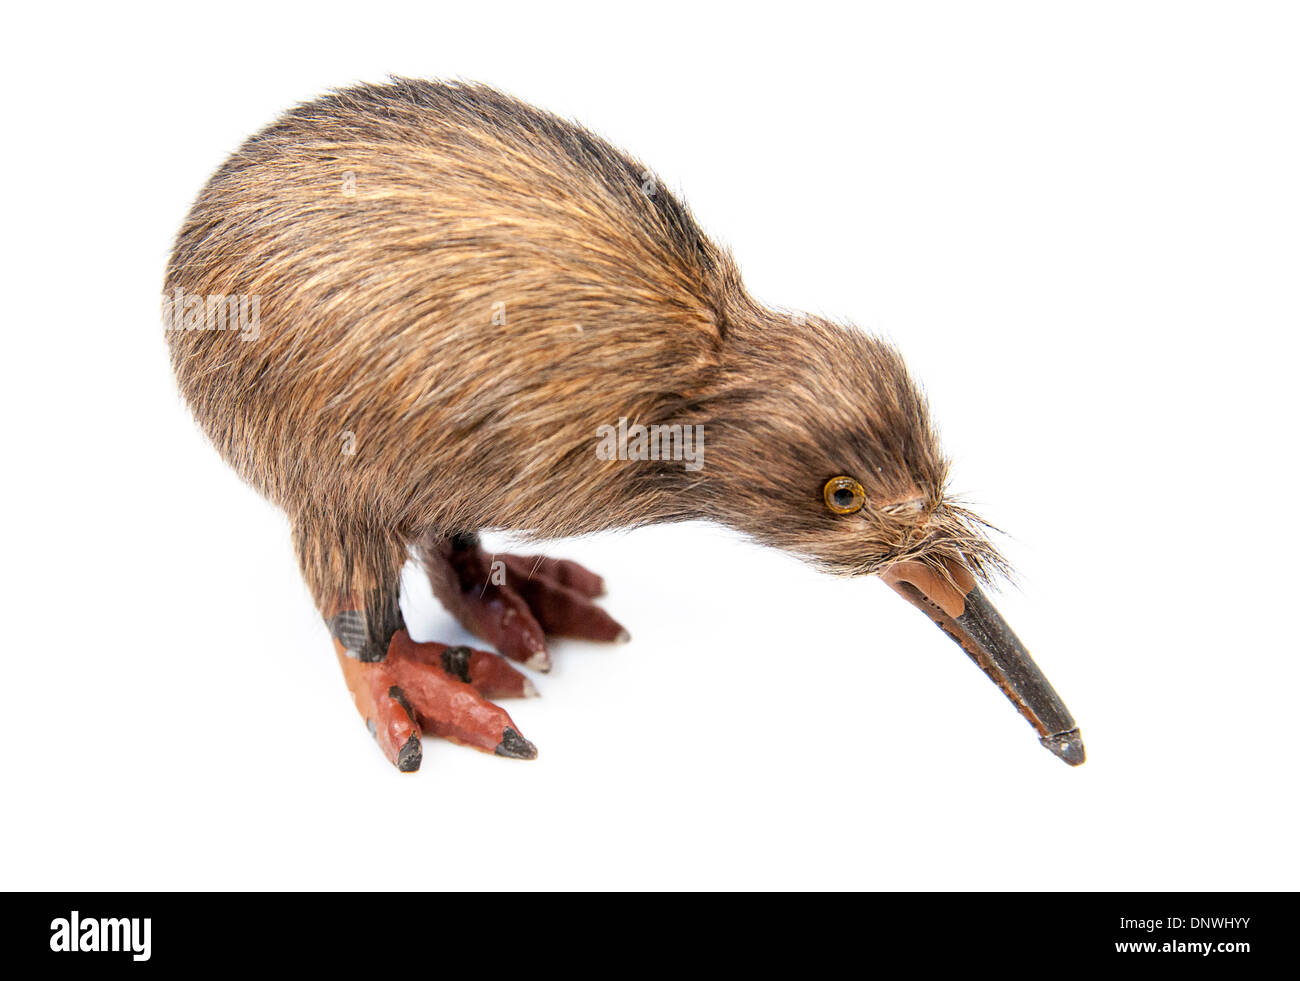 Kiwi bird isolated immagini kiwi bird isolated fotos stock alamy